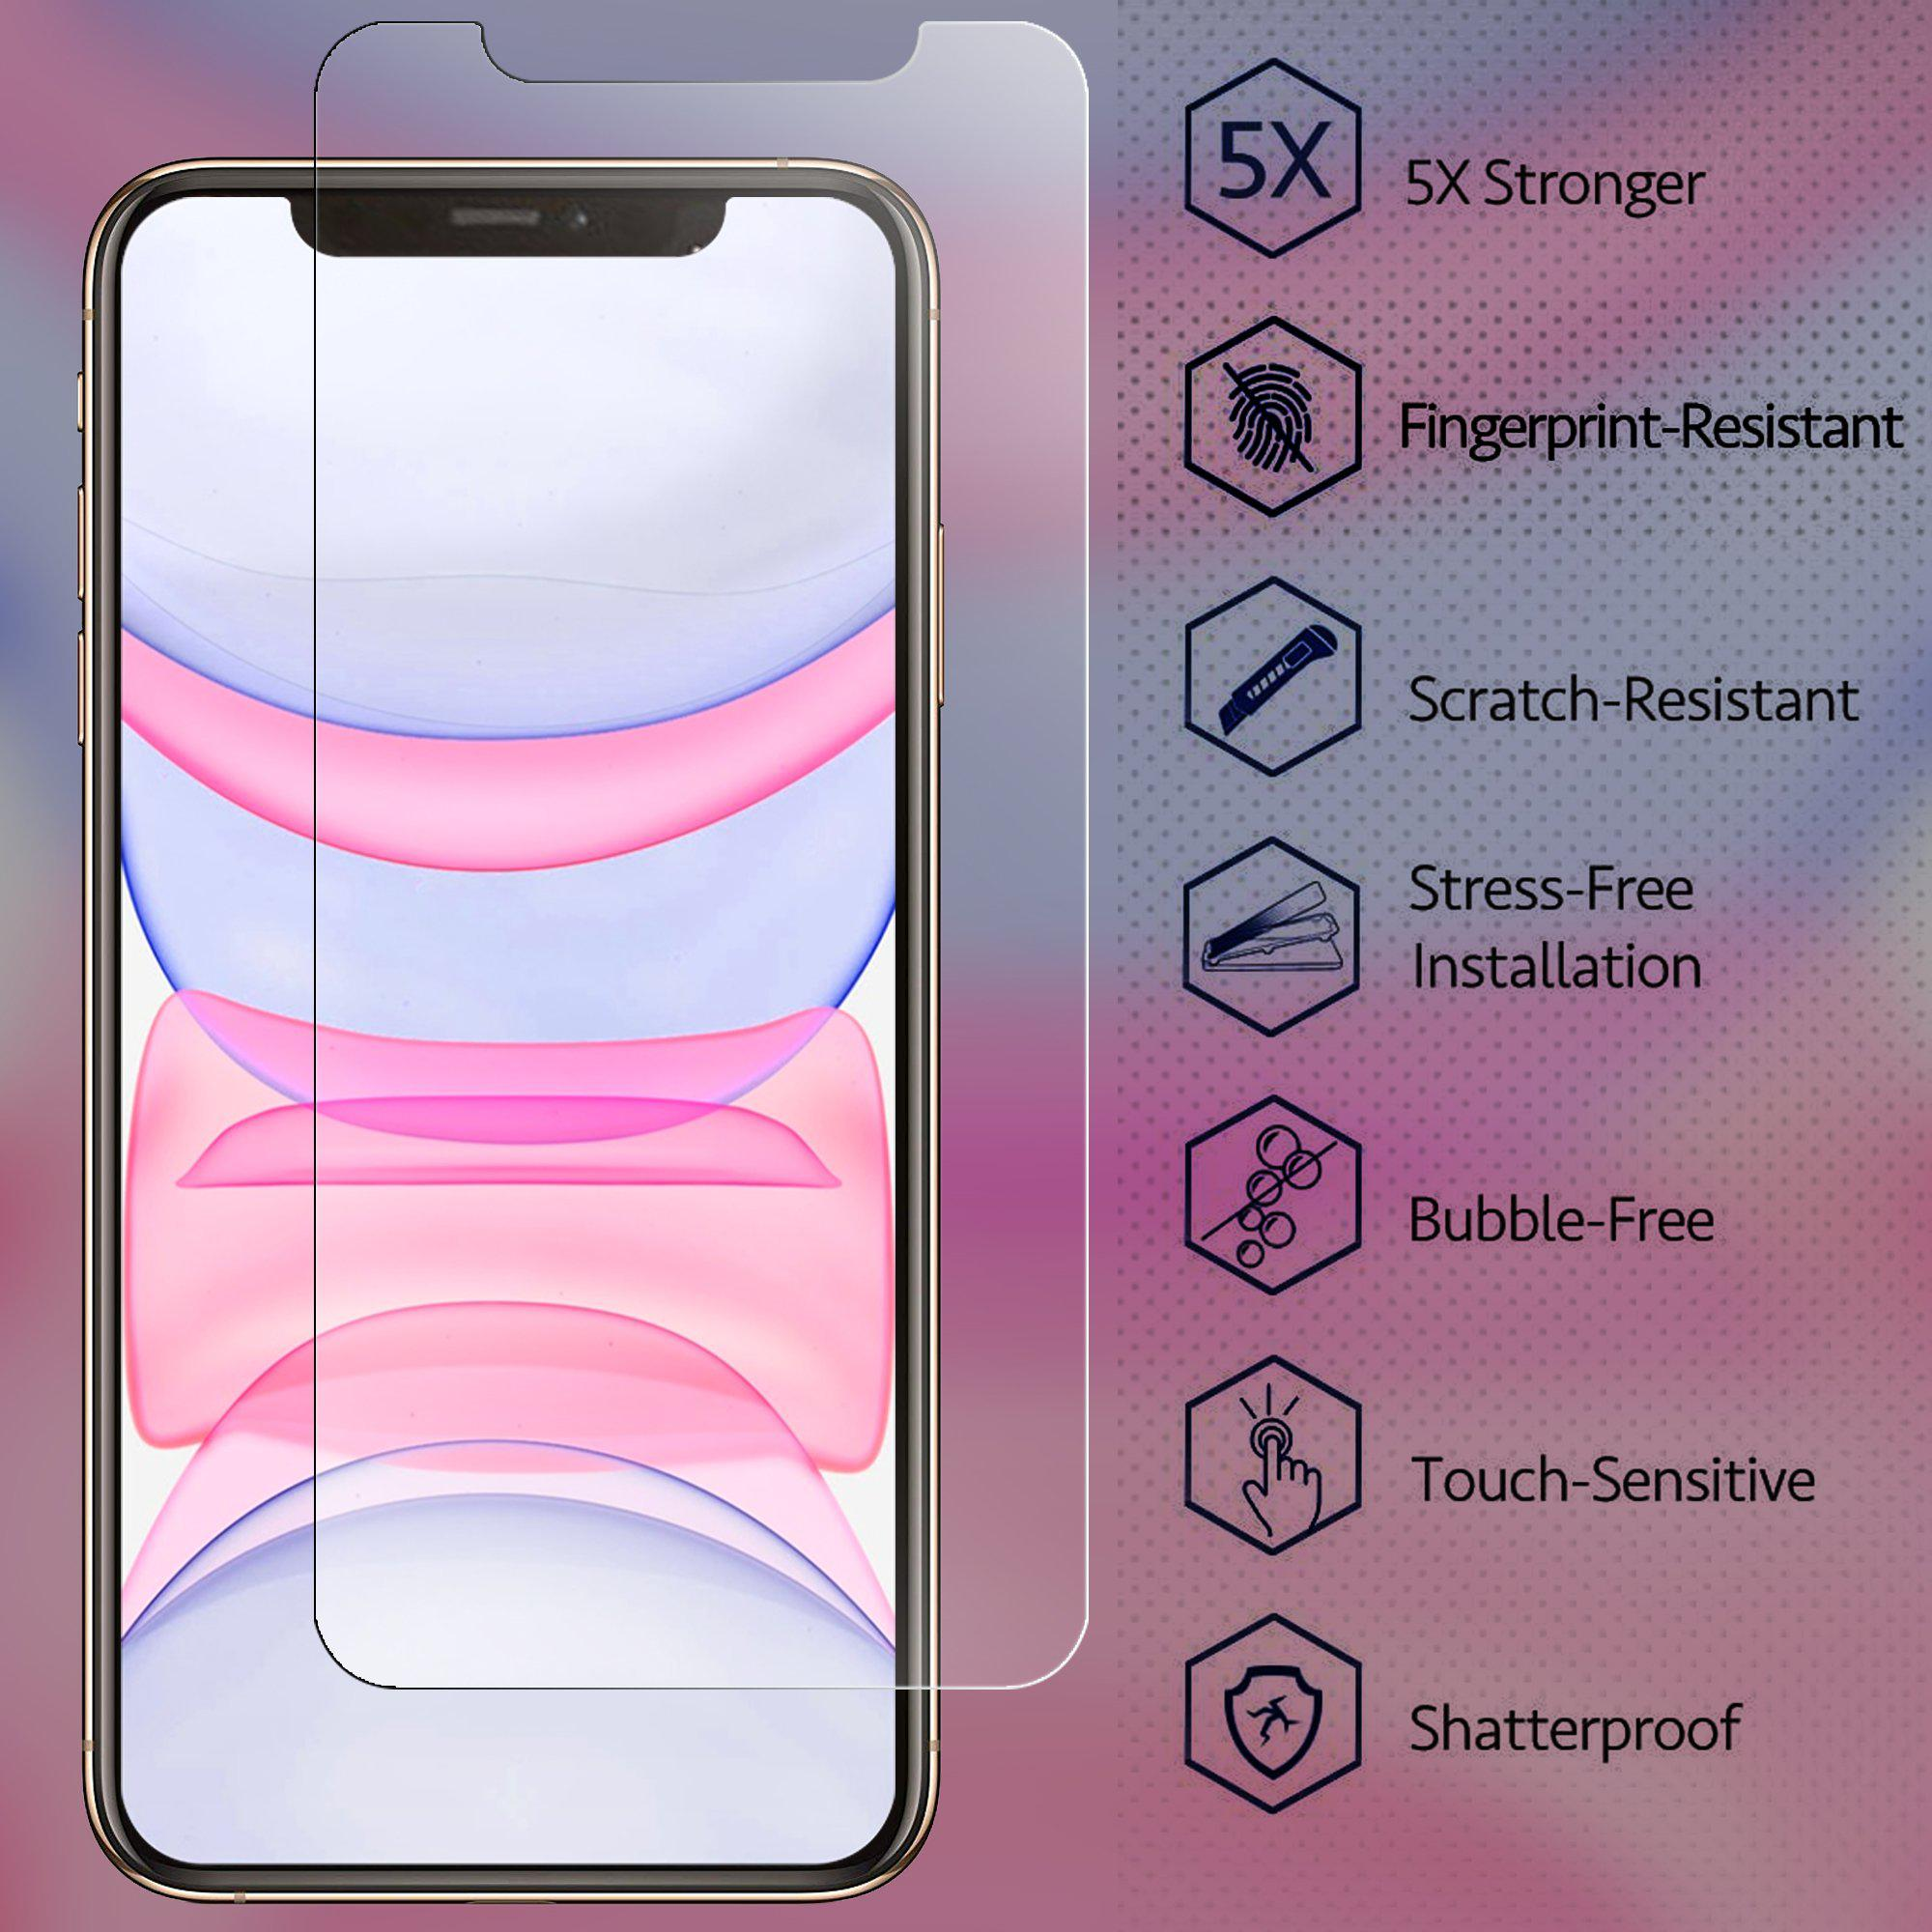 Conber Shatterproof Scratch-Resistant Tempered Glass Film Screen Protector for iPhone SE 2020 // iPhone SE 2nd Generation 2 Pack Screen Protector for iPhone SE 2020 // iPhone SE 2nd Generation